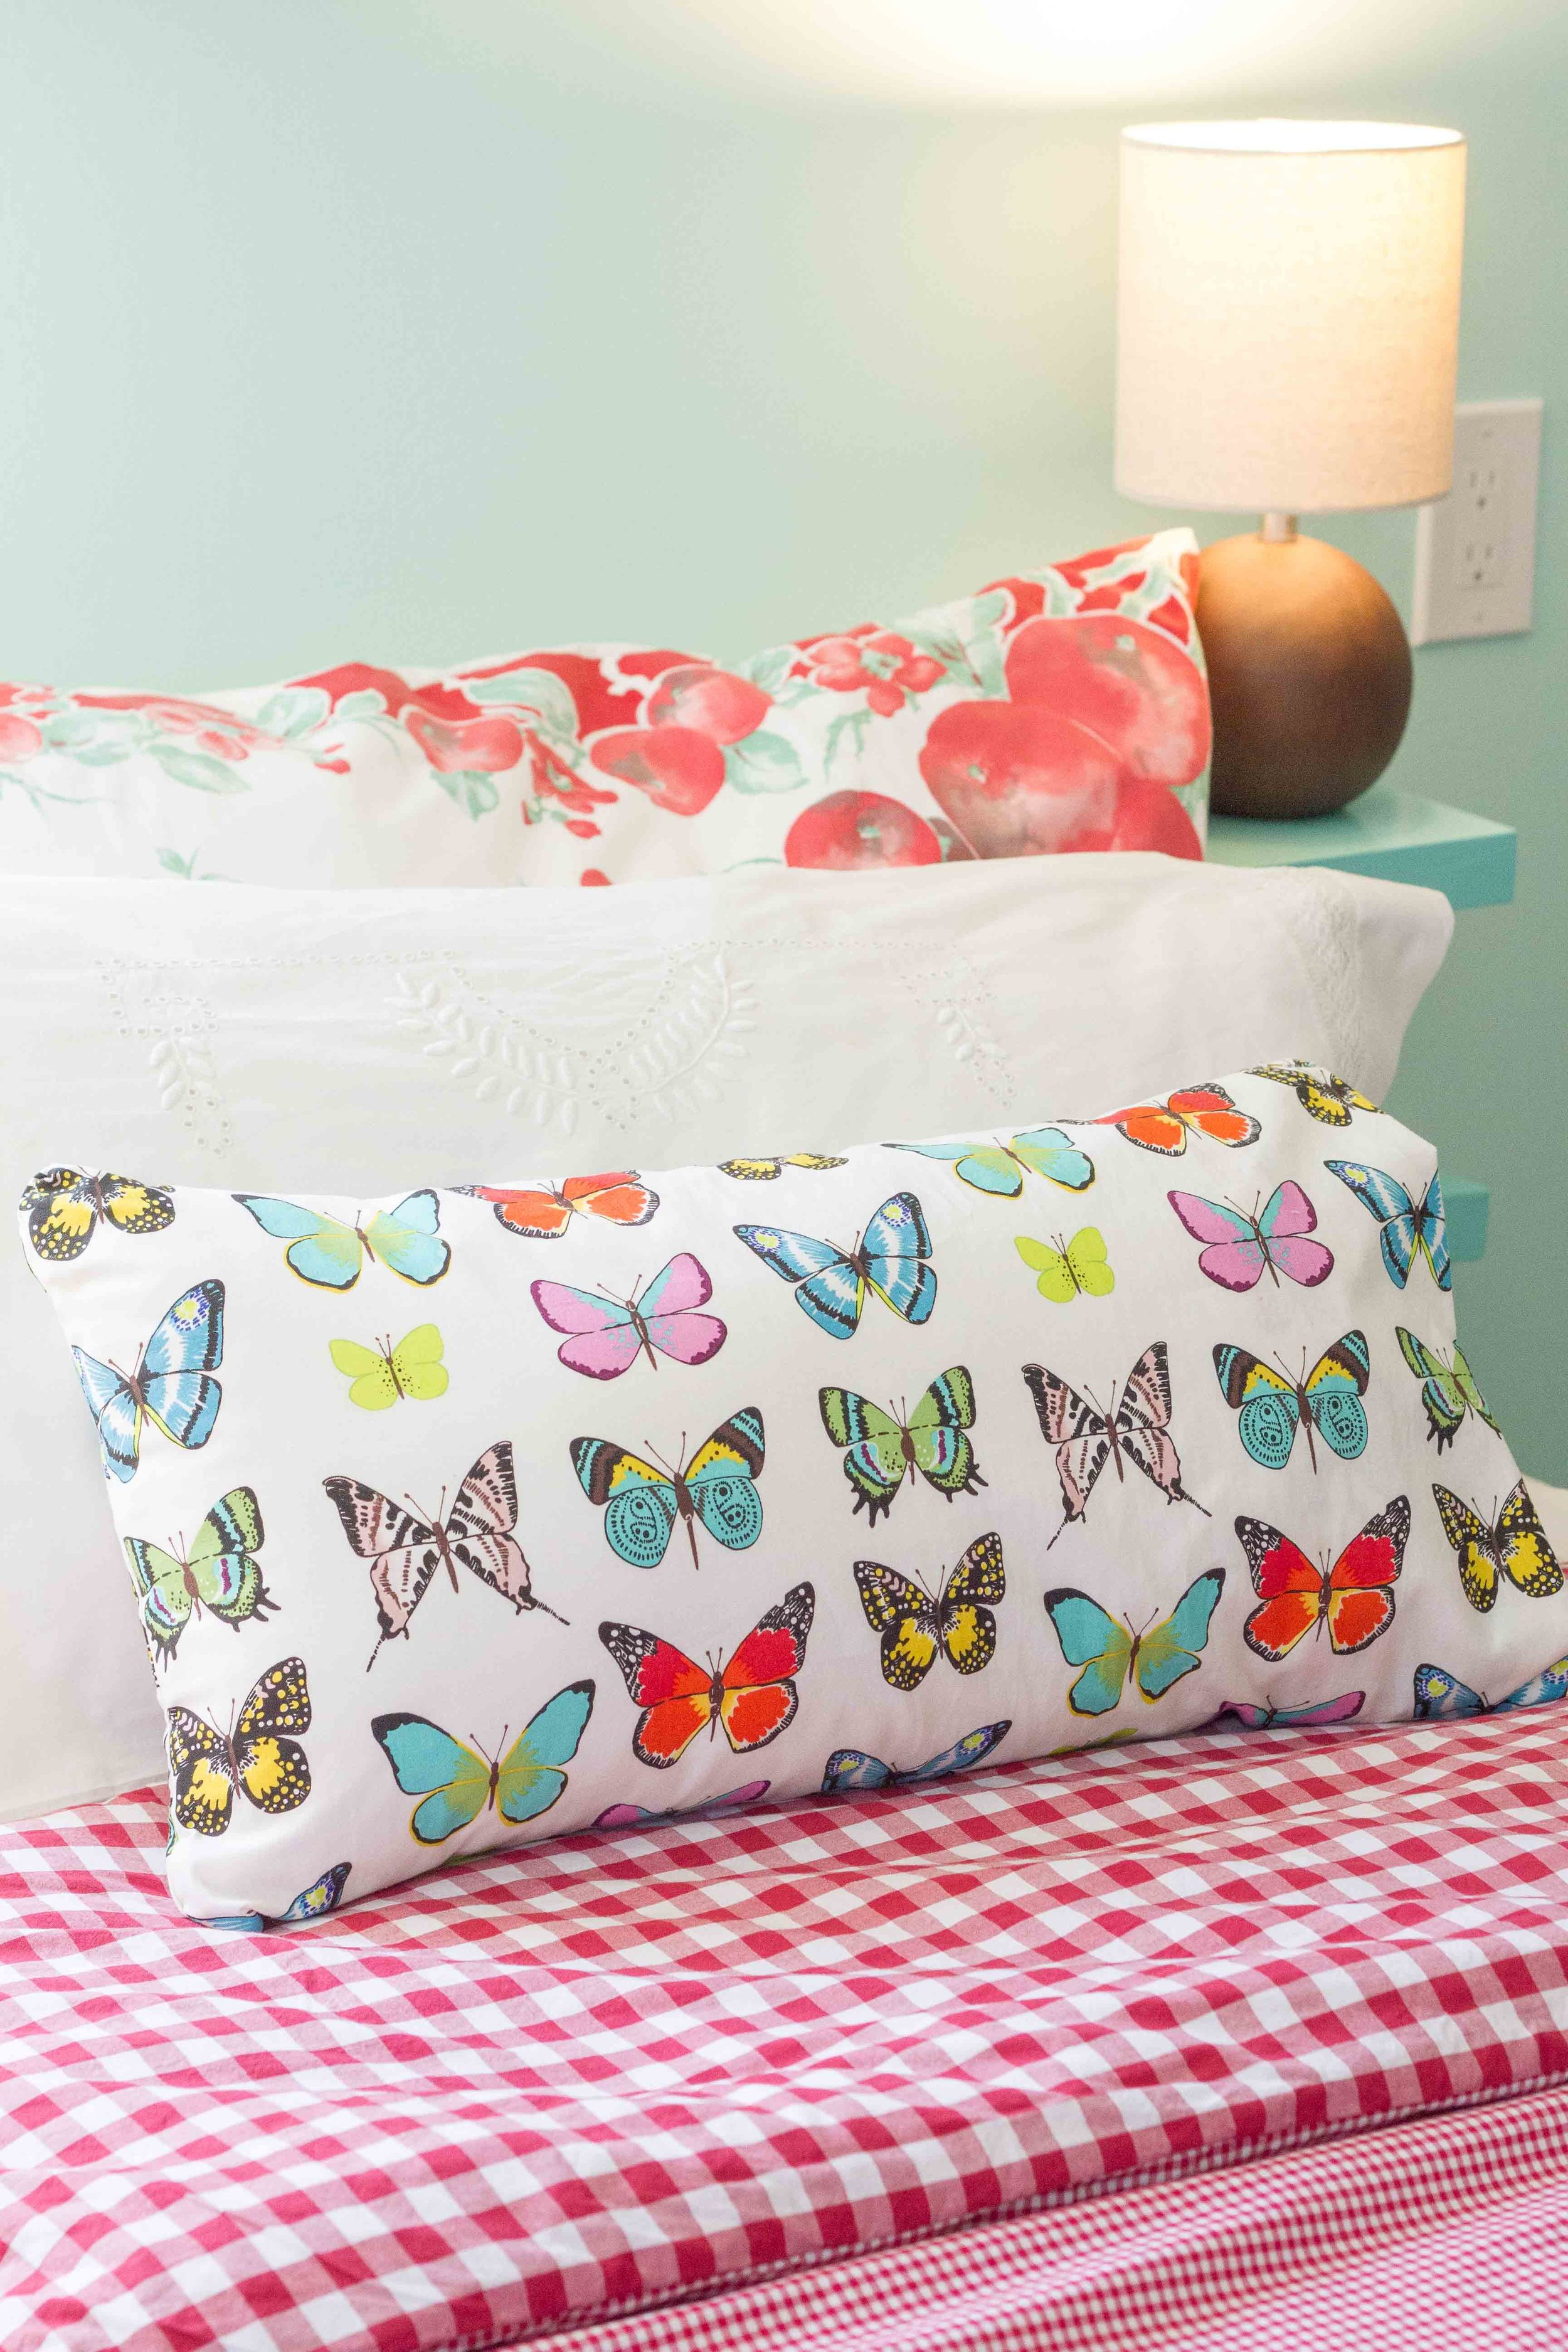 The butterfly pillows have a more tailored look.